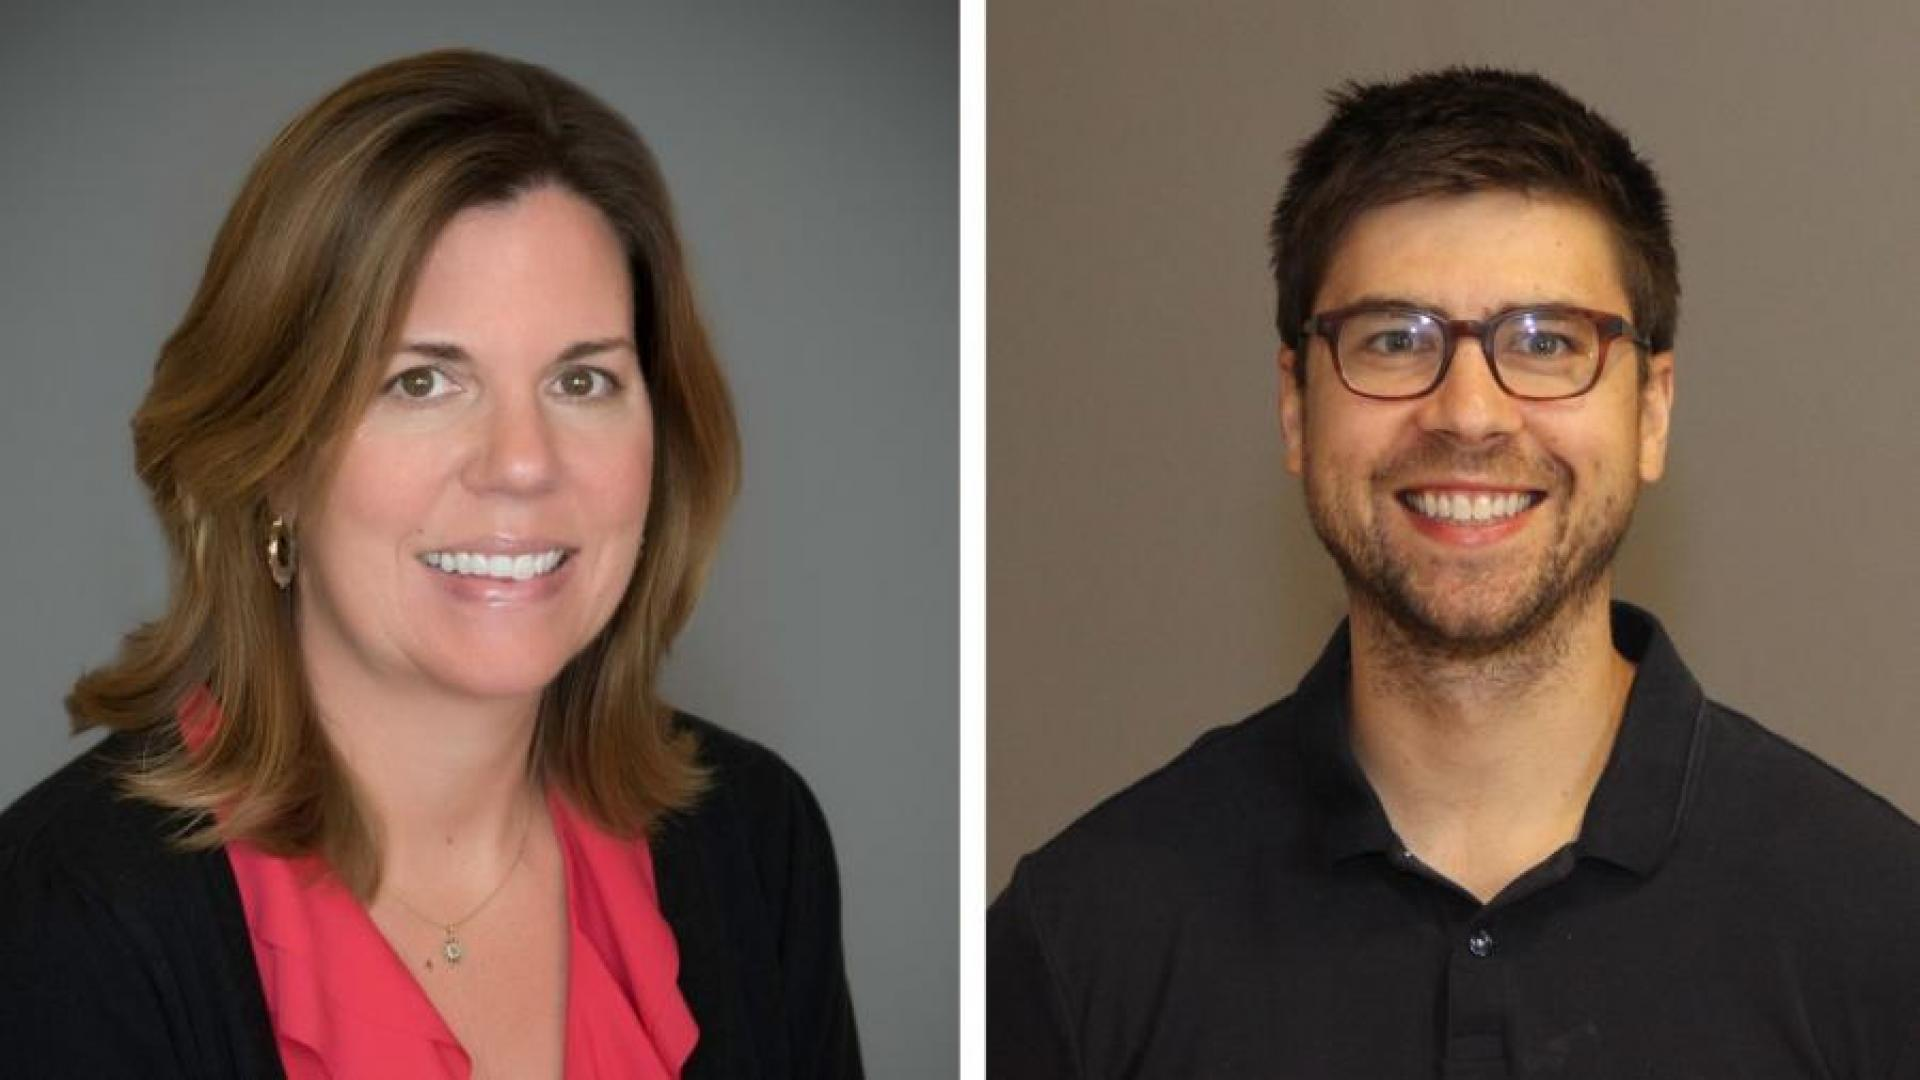 Dr. Tracy Livingston and Dr. Caleb Fischer